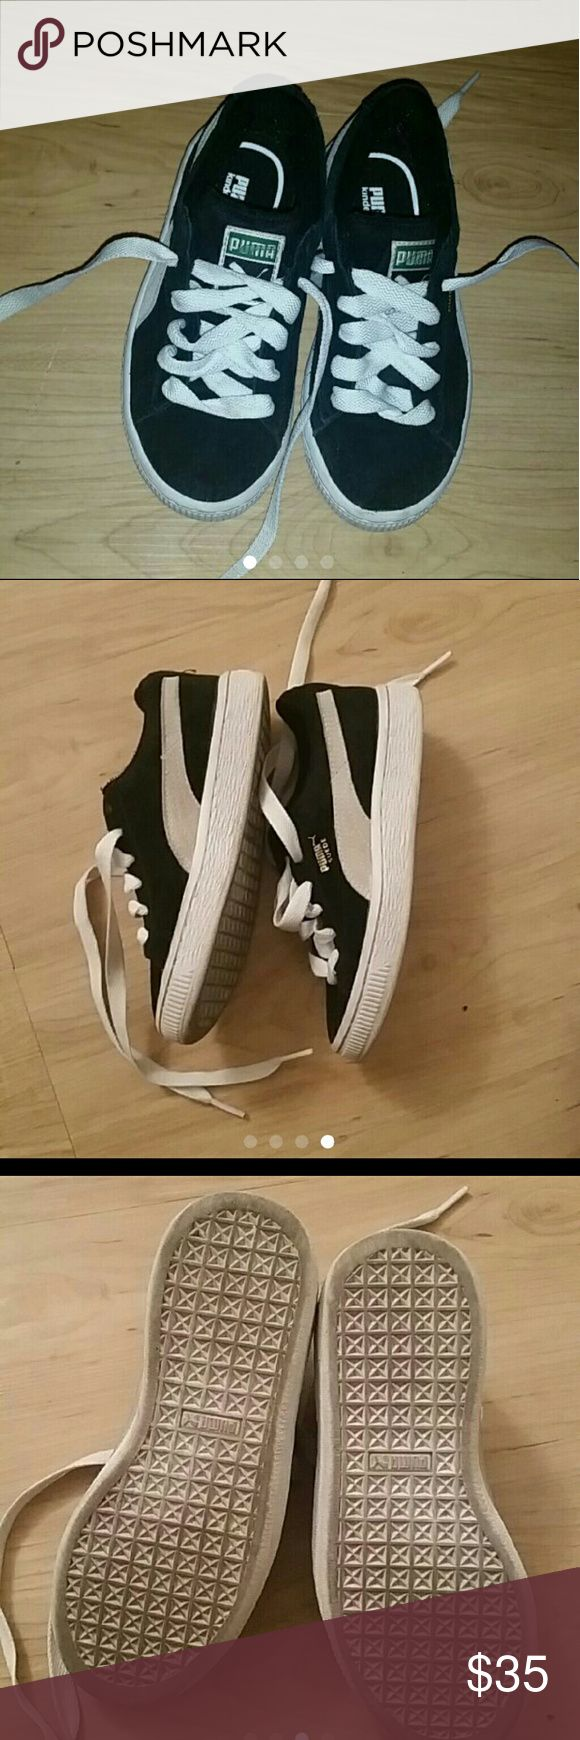 Black & white Pumas OPEN TO OFFERS   Black and white suede Pumas Kid Size 12 I washed the laces Almost like new Barely worn They're too small now So that's why I'm selling Perfect Condition Unisex For lil boy or lil girl to wear Clean bottoms    Pet free Smoke free home pumas Shoes Sneakers